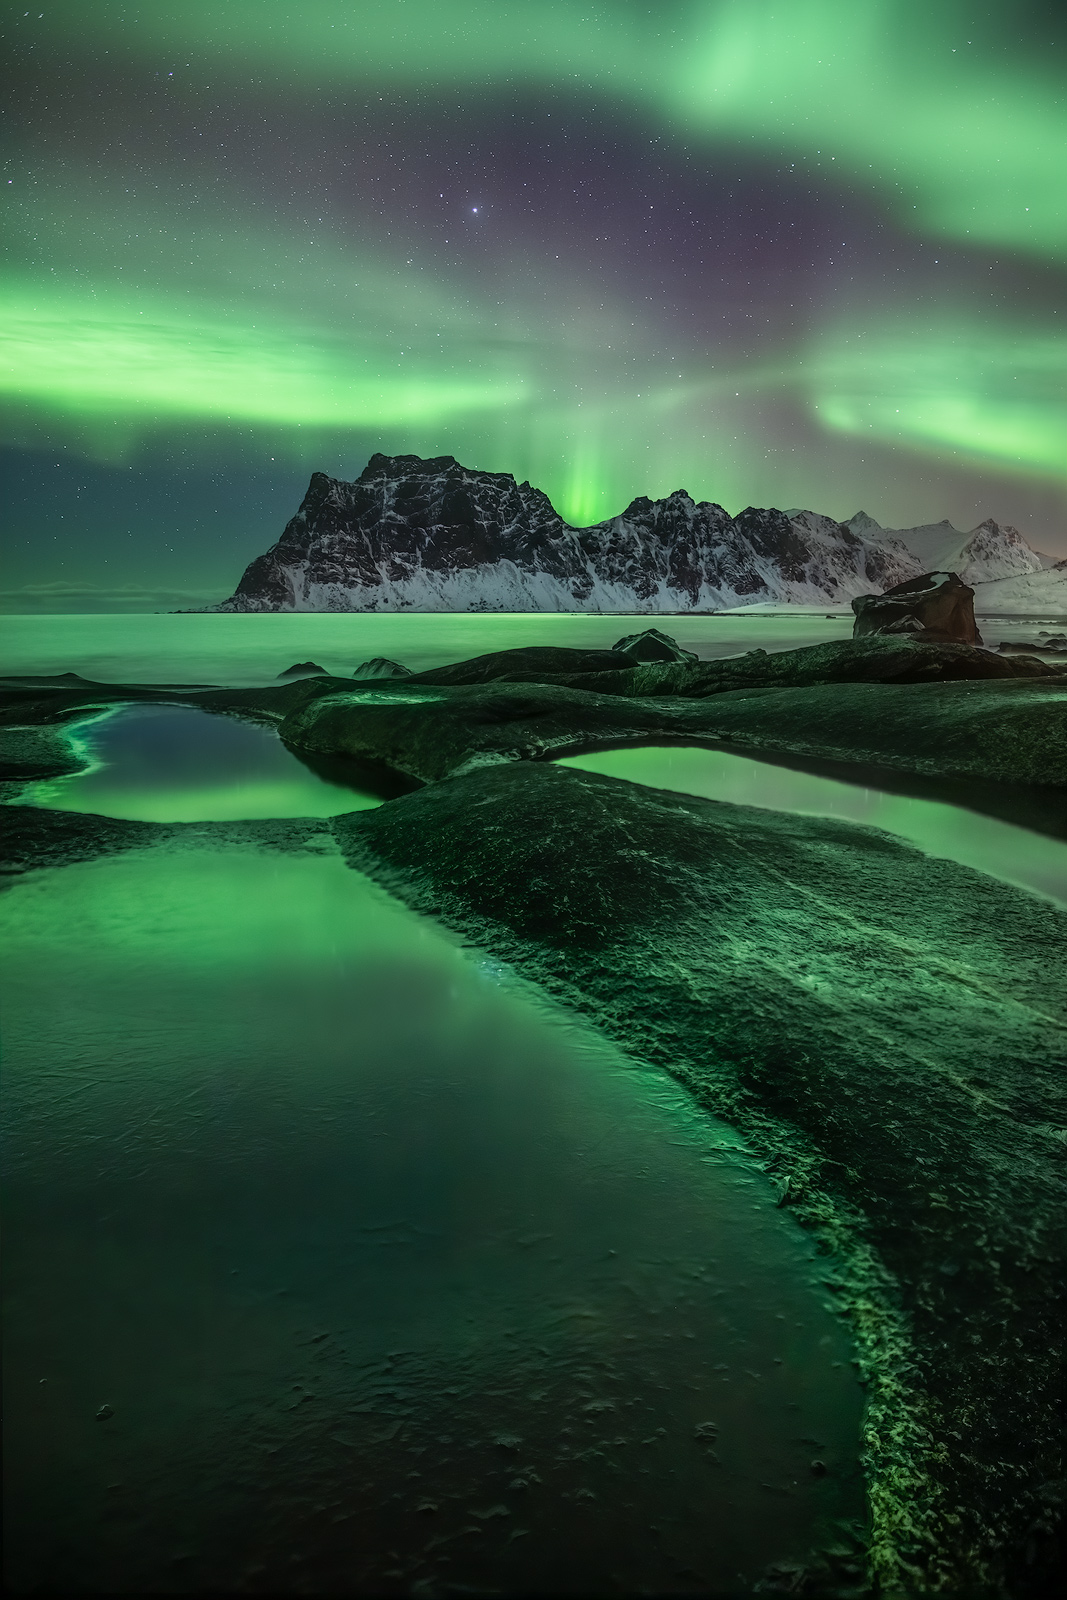 A nice aurora reflecting in foreground pools along a coastline in Lofoten.